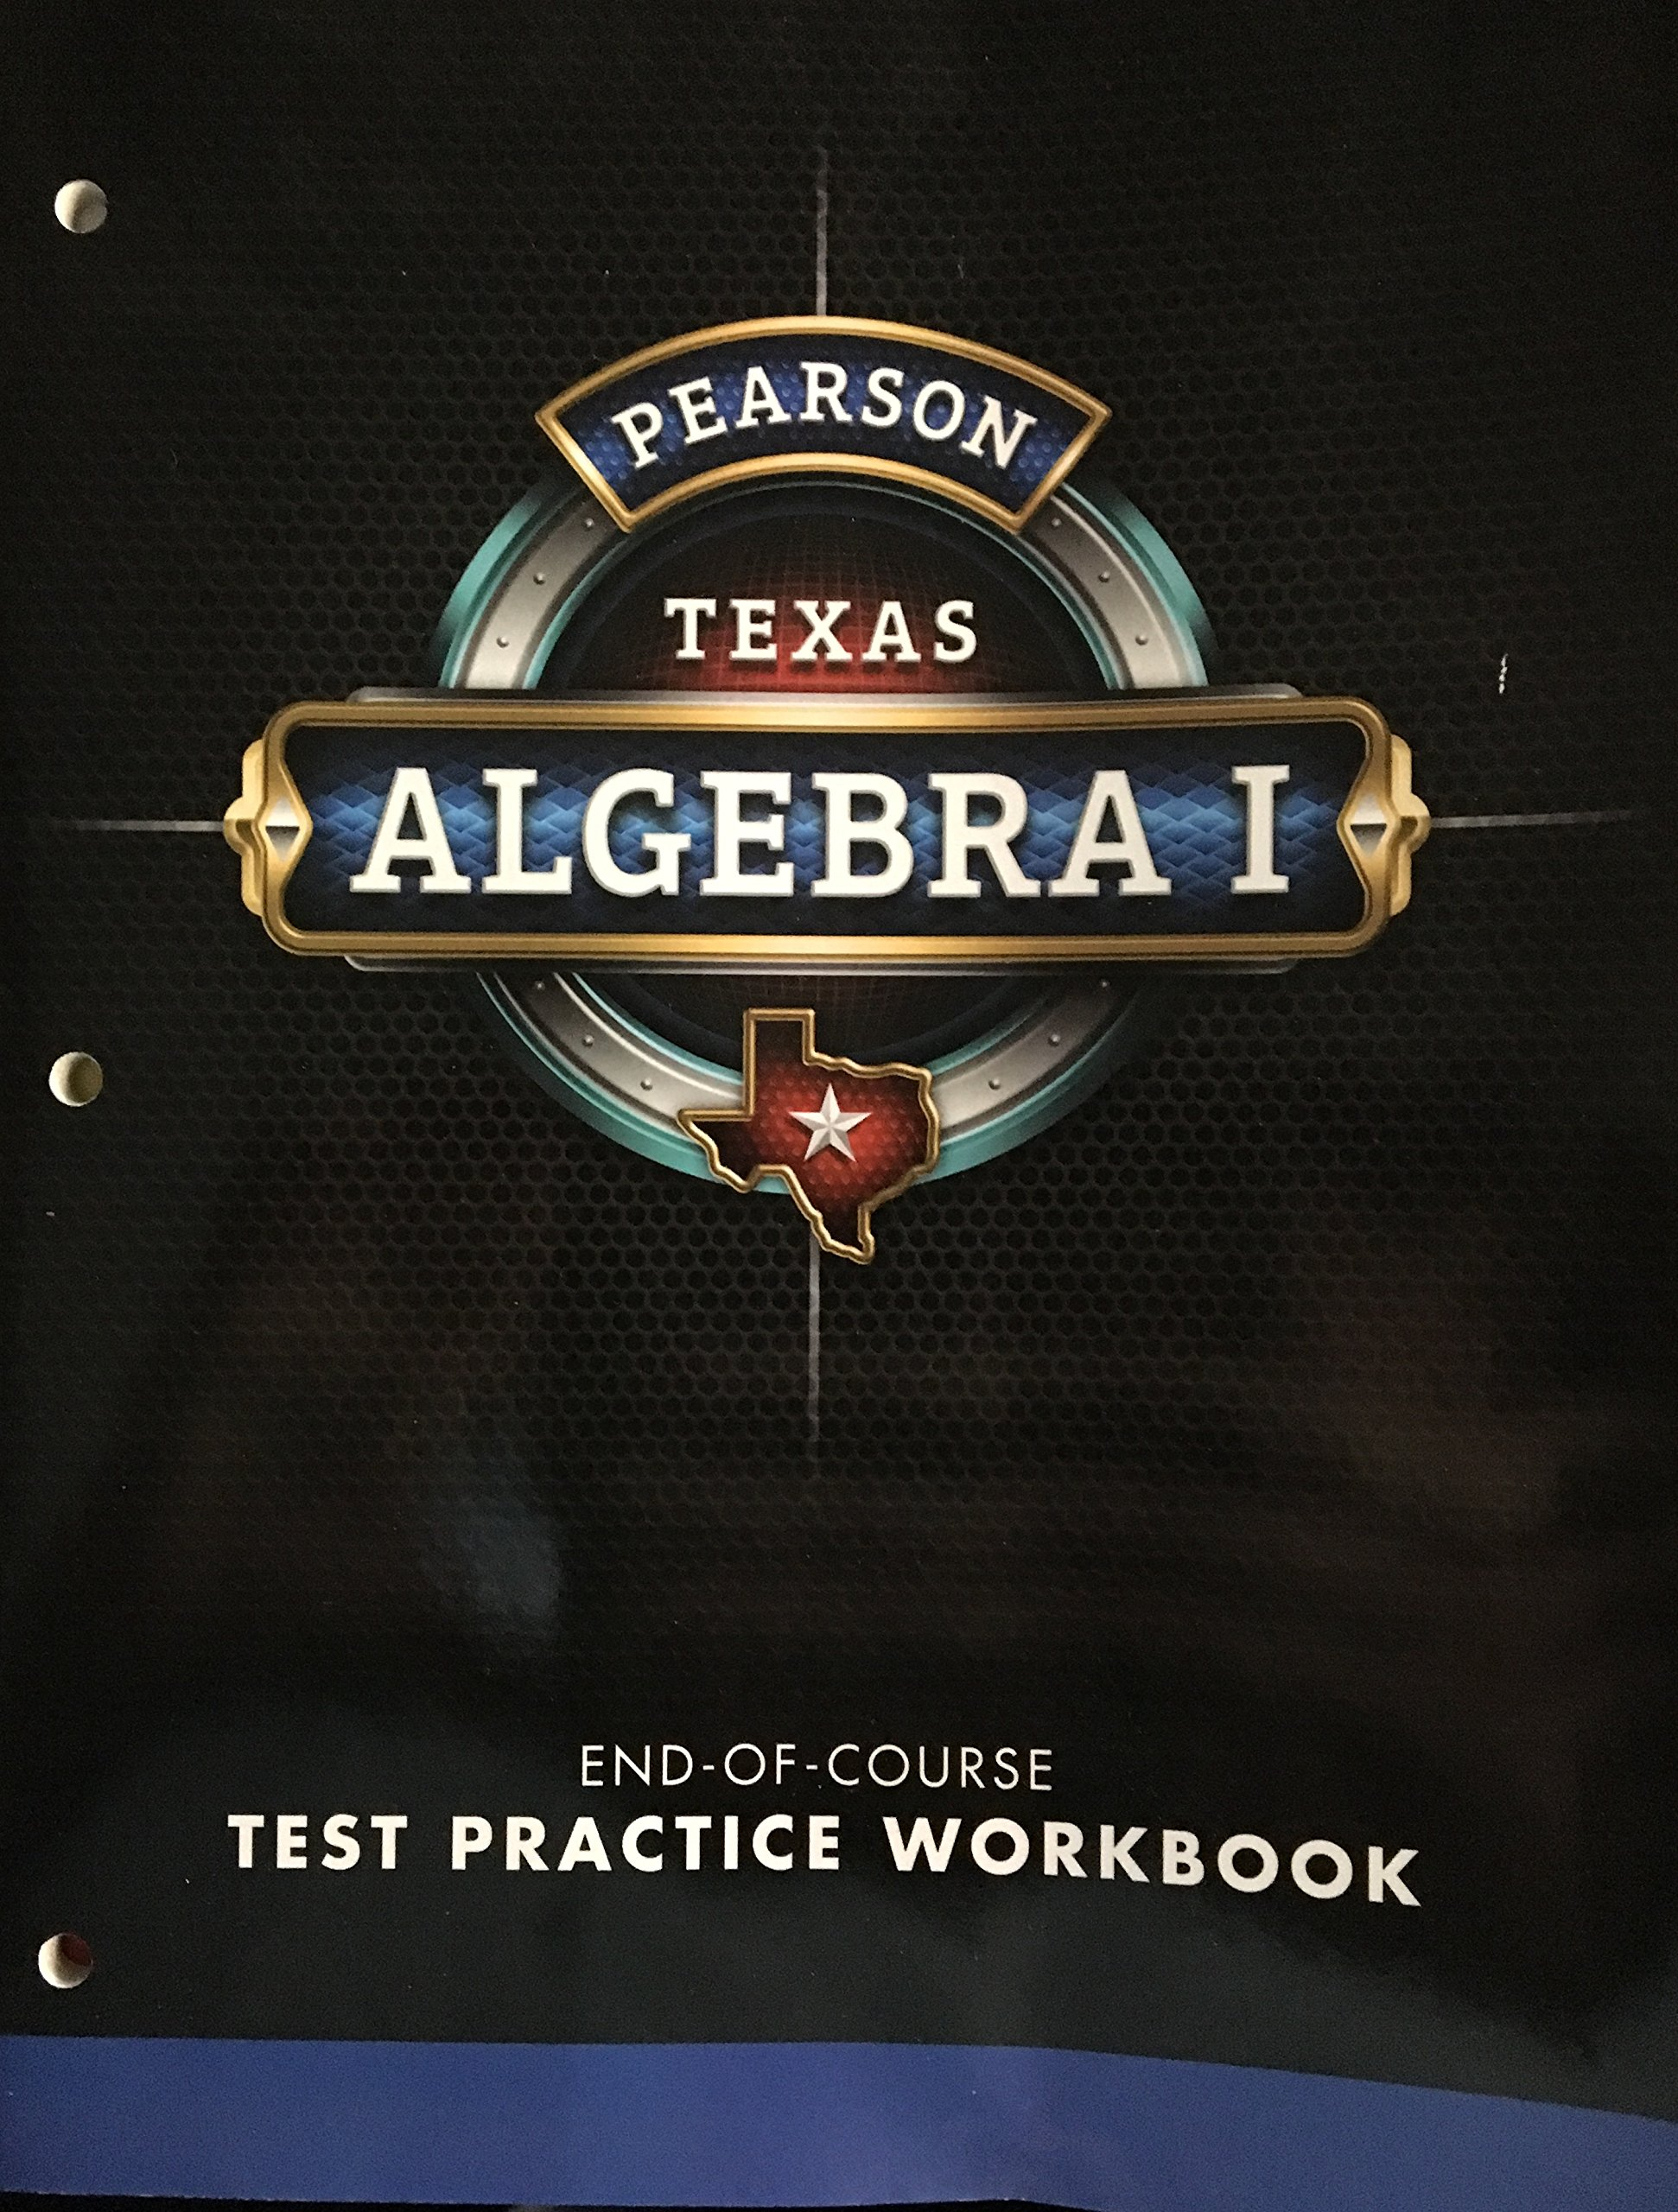 Pearson Texas Algebra 1 - End of Course - Test Practice Workbook: Pearson:  9780133326628: Amazon.com: Books